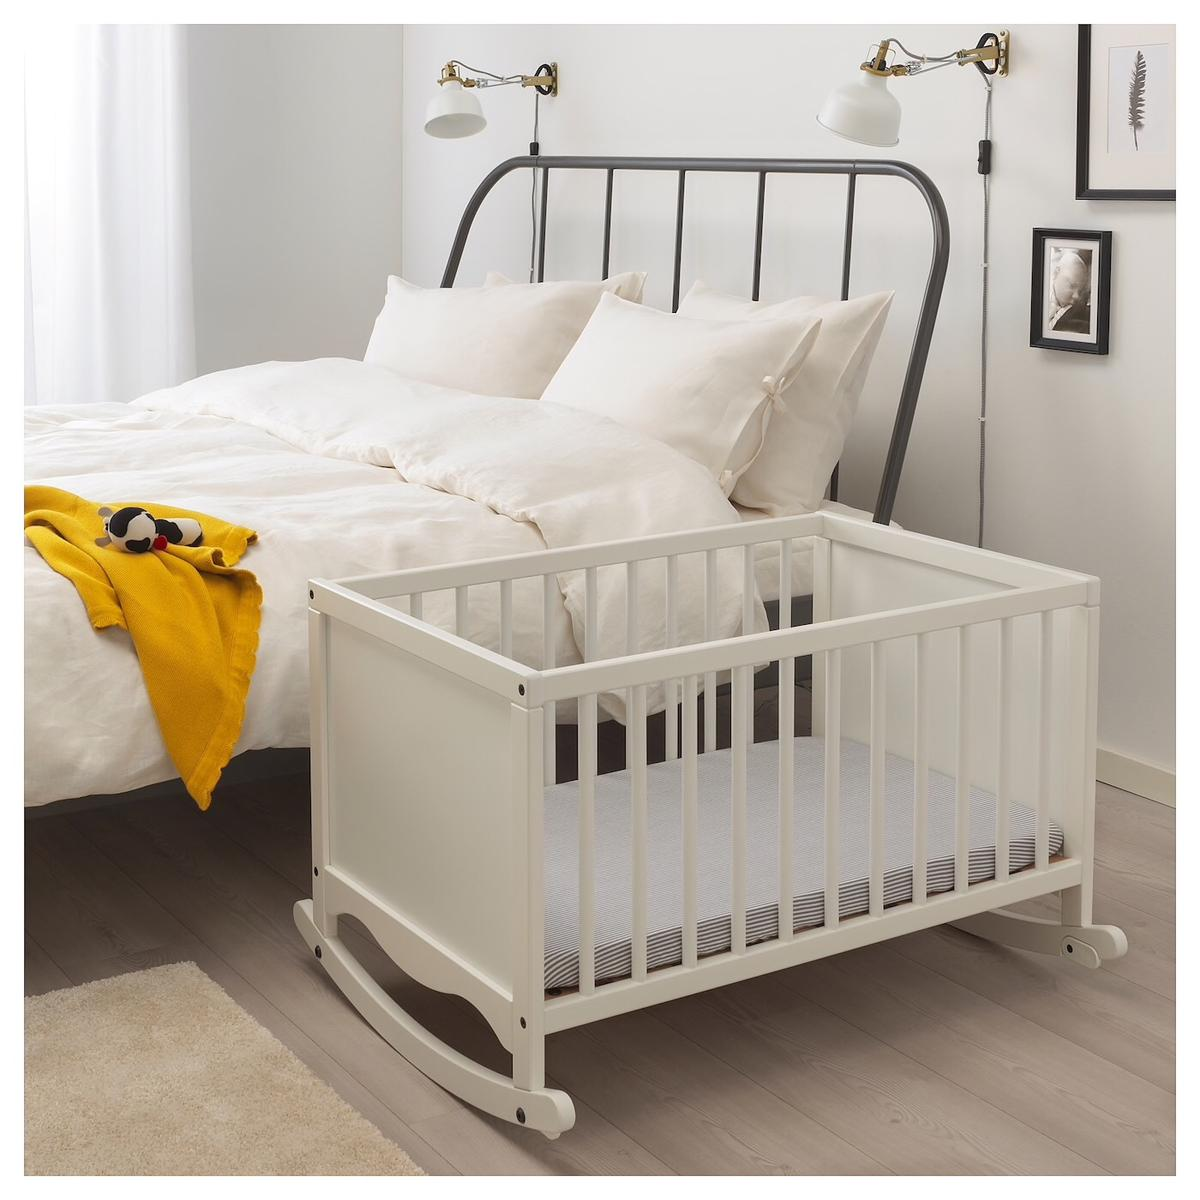 Baby Wippe Ikea In 6020 Innsbruck For 55 00 For Sale Shpock